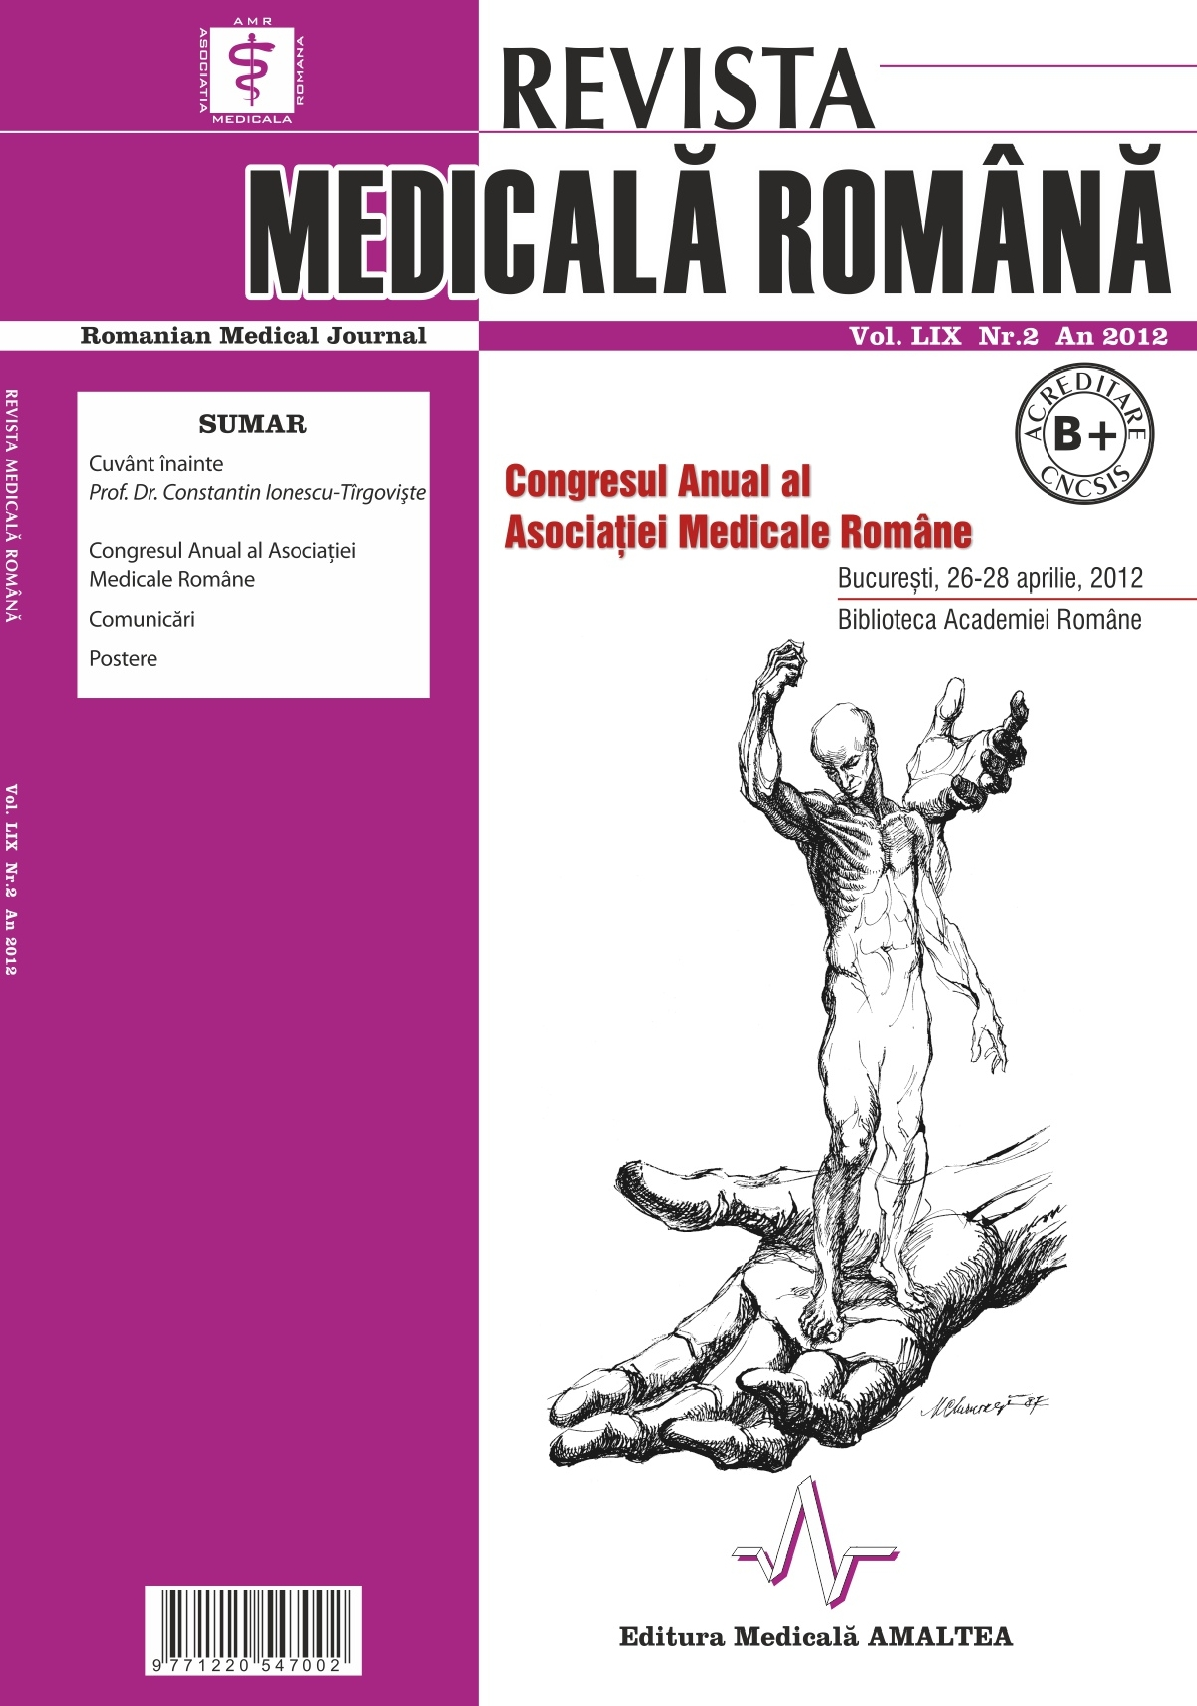 REVISTA MEDICALA ROMANA - Romanian Medical Journal, Vol. LIX, No. 2, Year 2012